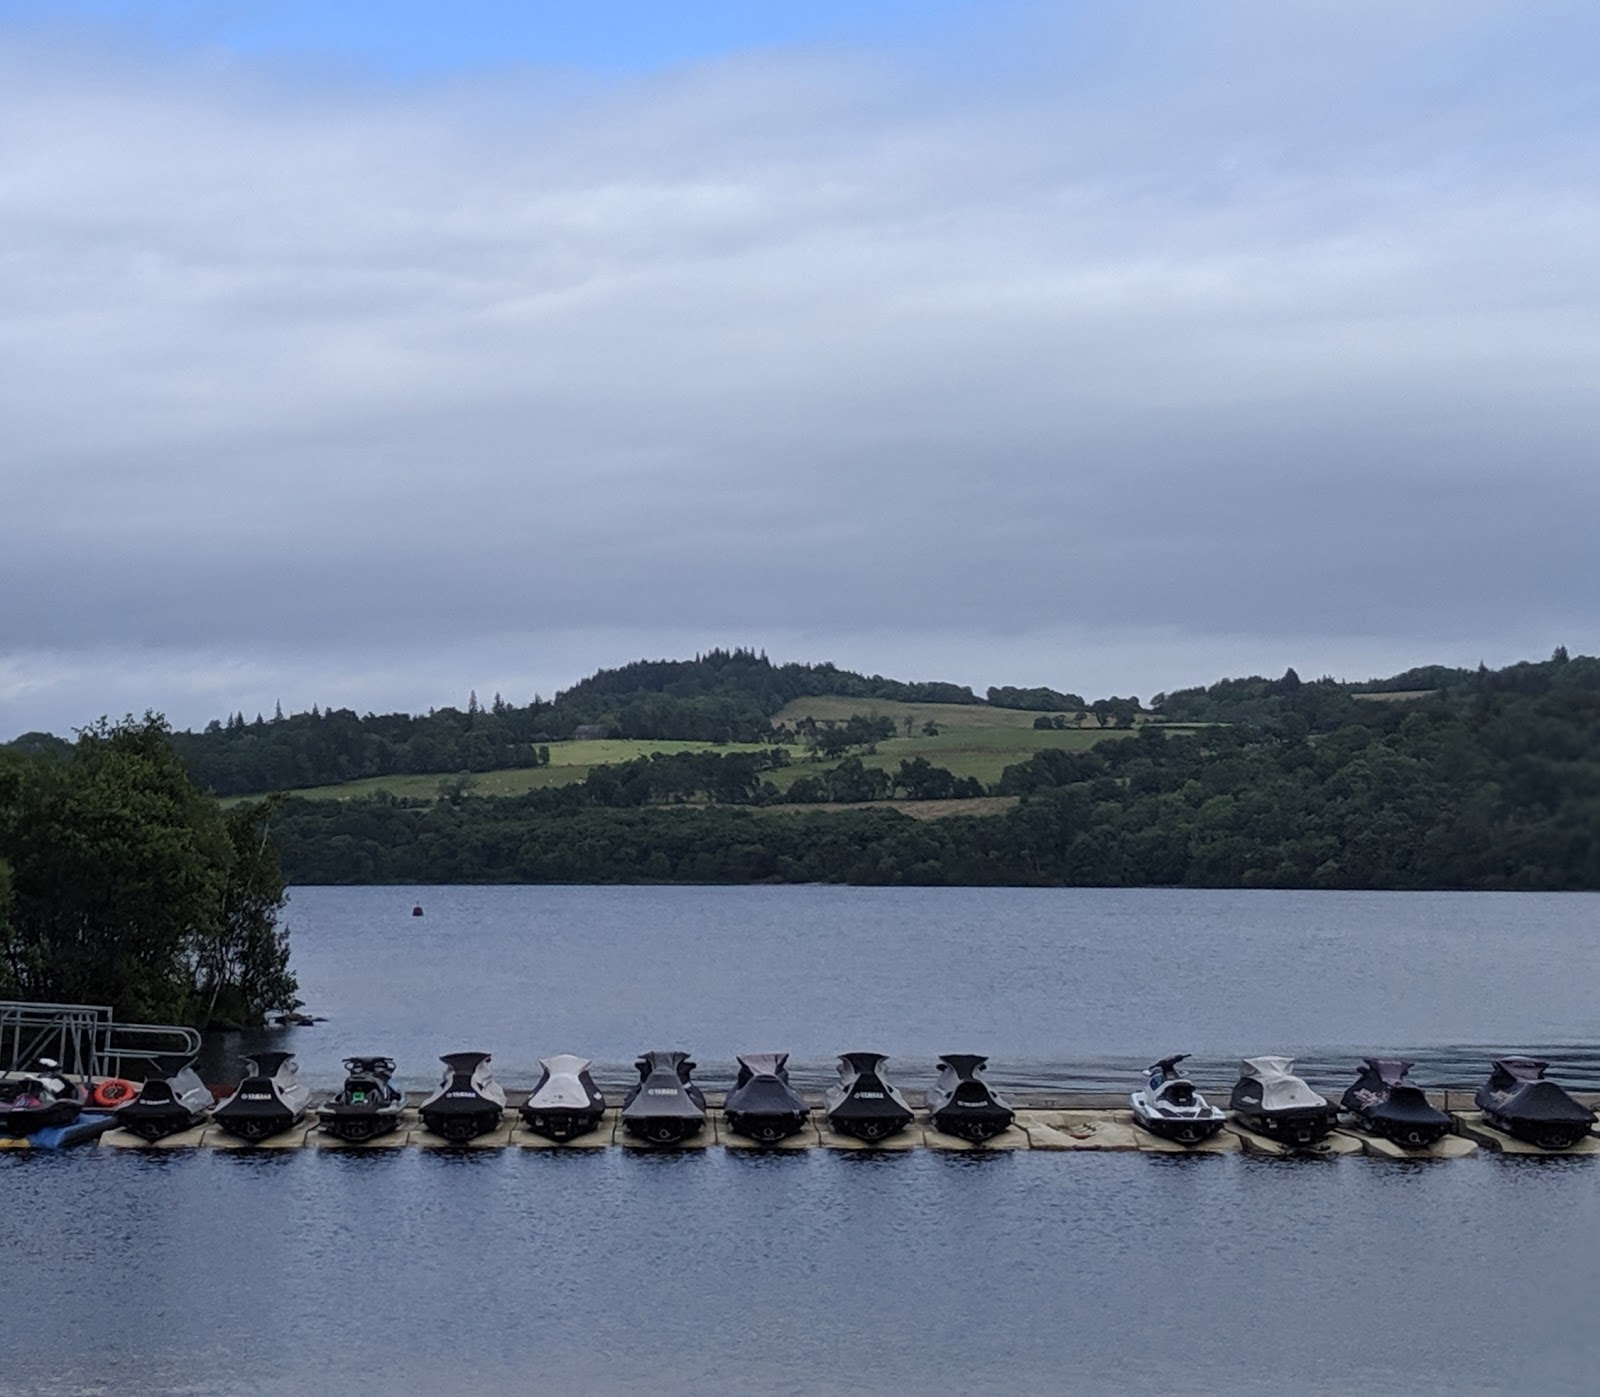 A Short Break at Cameron Lodges, Loch Lomond - Celtic Warrior Loch Lomond Cruise views